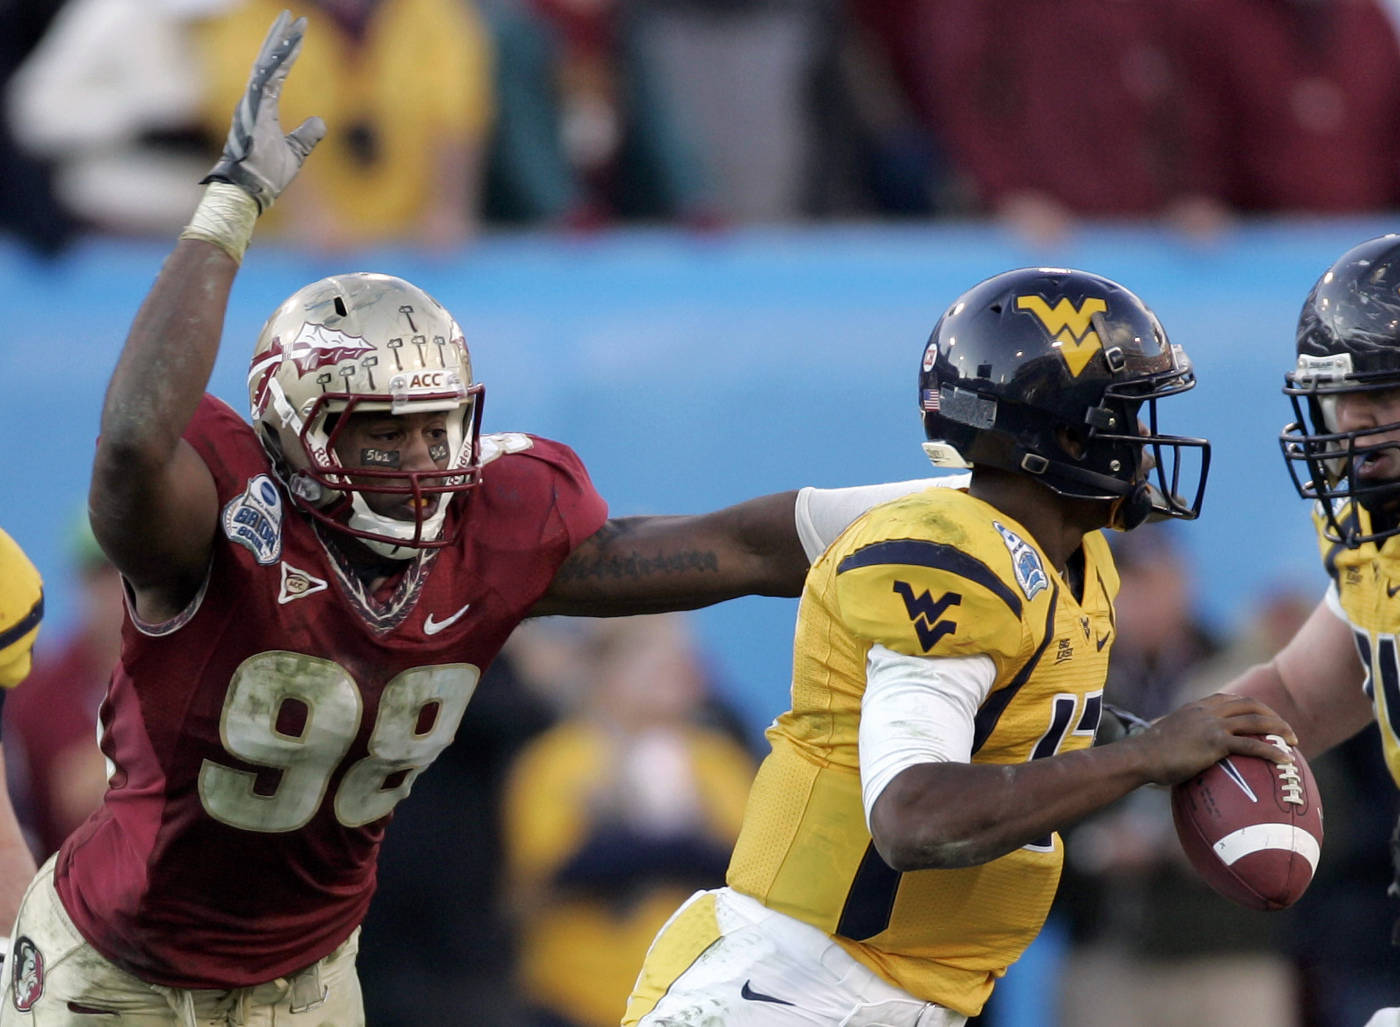 Florida State defensive tackle Jacobbi McDaniel, left, moves in for the sack on West Virginia quarterback Geno Smith during the fourth quarter of the Gator Bowl college football game on Friday, Jan. 1, 2010, in Jacksonville, Fla.  Florida State won 33-21.(AP Photo/Steve Cannon)